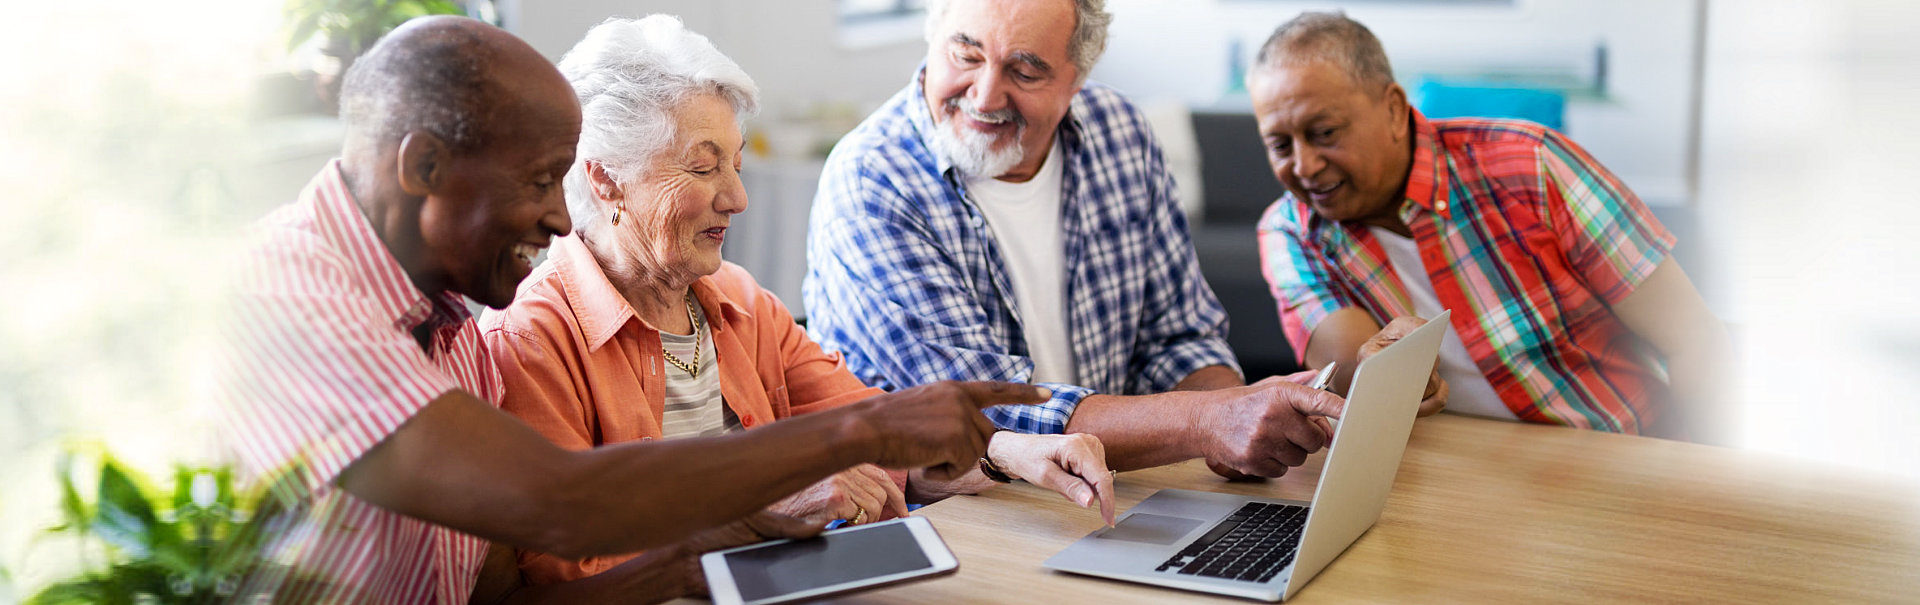 group of elderlies using a laptop and a tablet